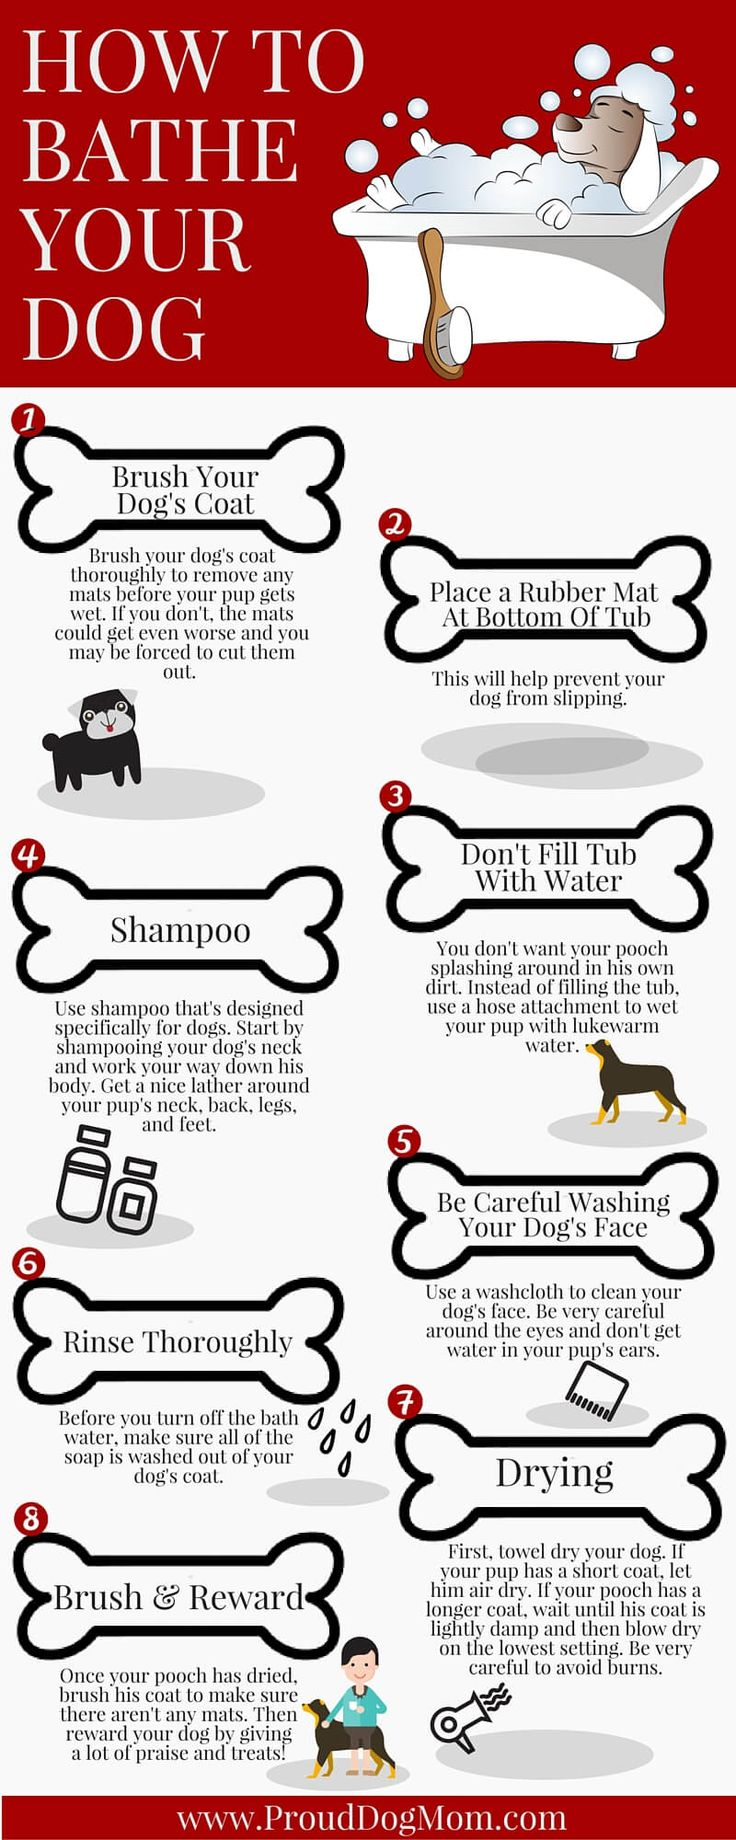 how to bathe your dog infographic 1 - Proud Dog Mom